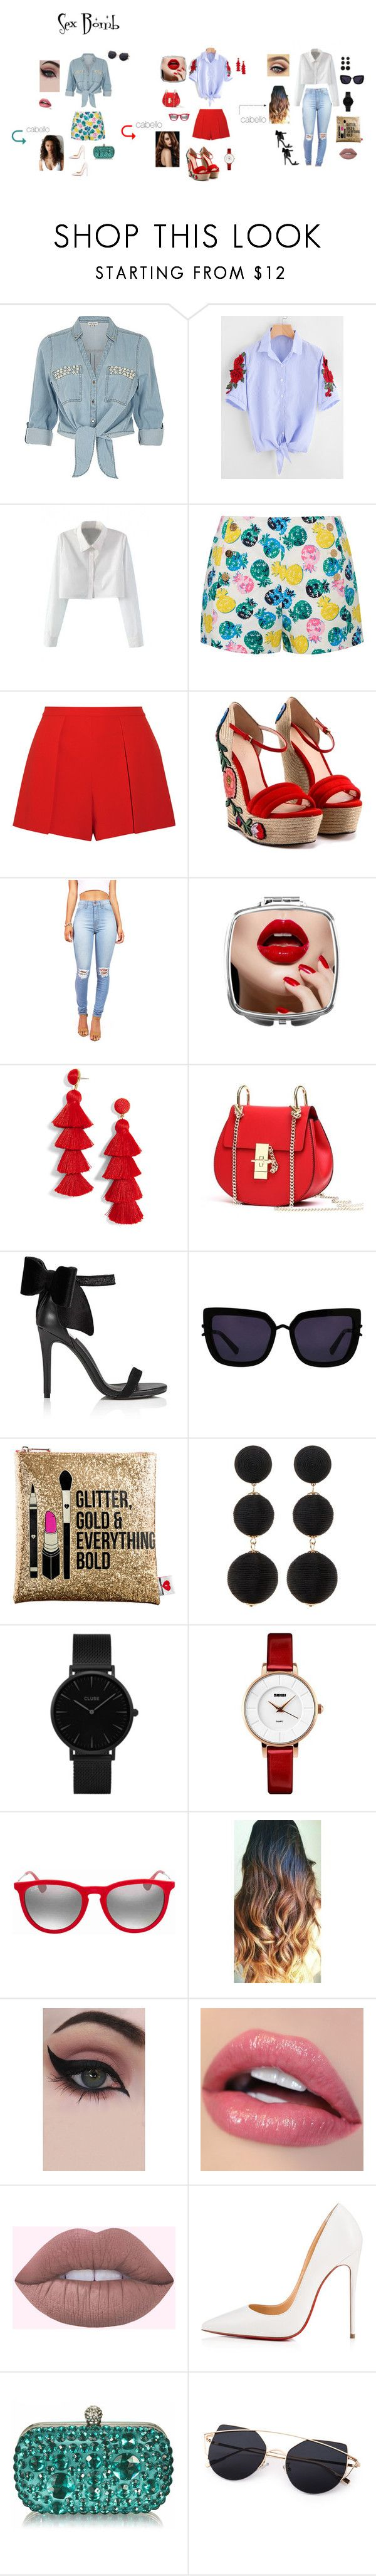 """""""estilo"""" by viridiana-islas on Polyvore featuring moda, ZAK, WithChic, Draper James, Alice + Olivia, Gucci, BaubleBar, Miss Selfridge, Kendall + Kylie y Sephora Collection"""